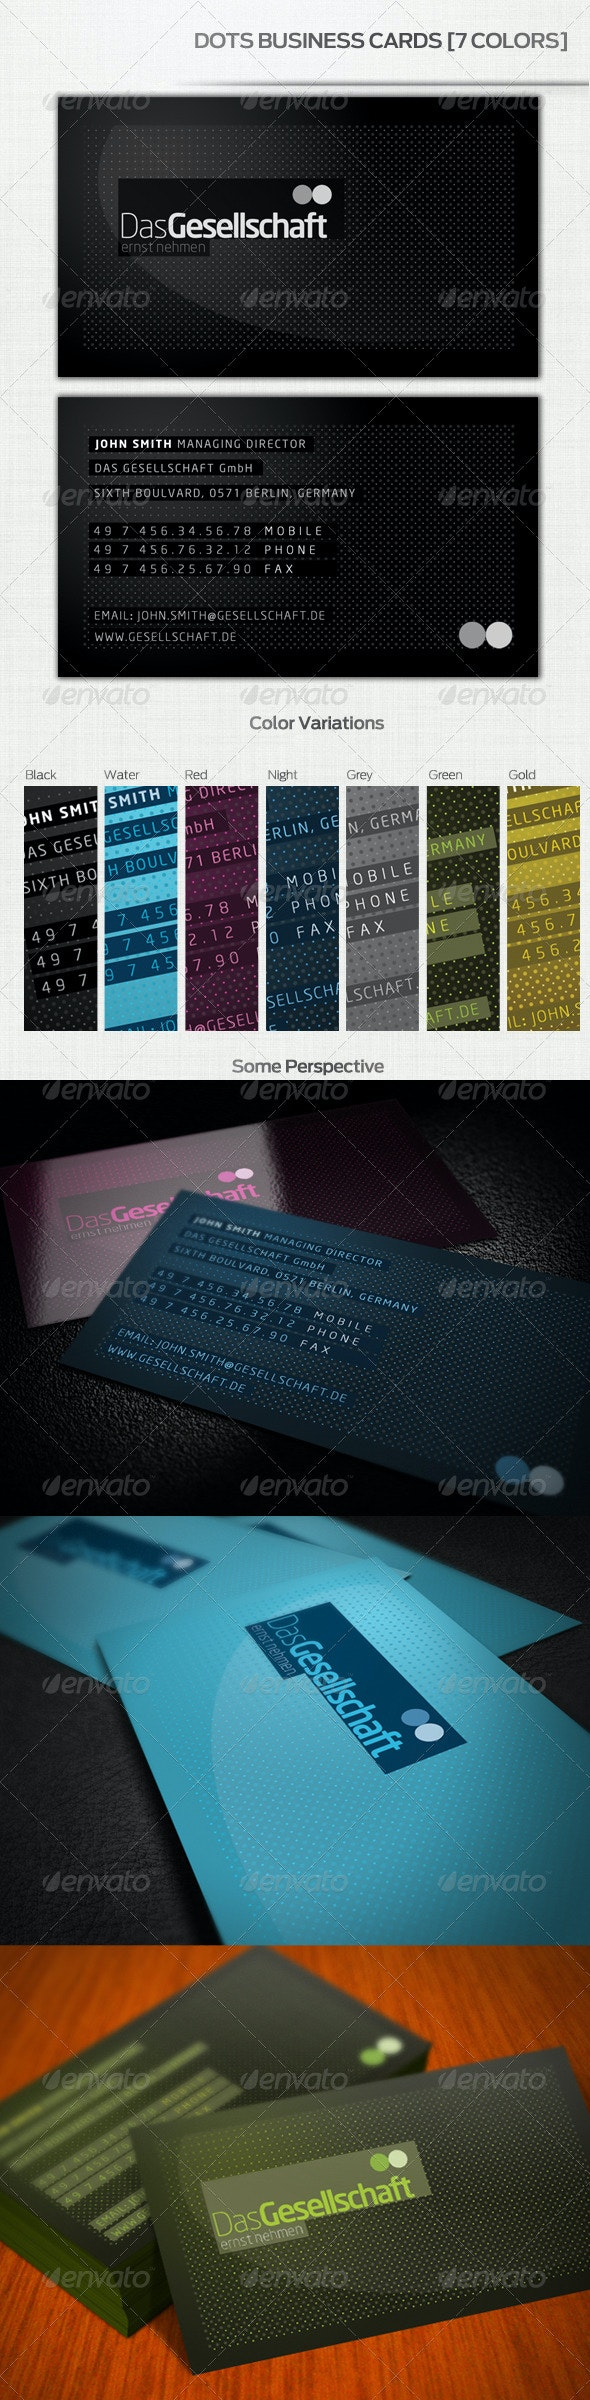 Dots Business Cards [7 Colors] - Creative Business Cards